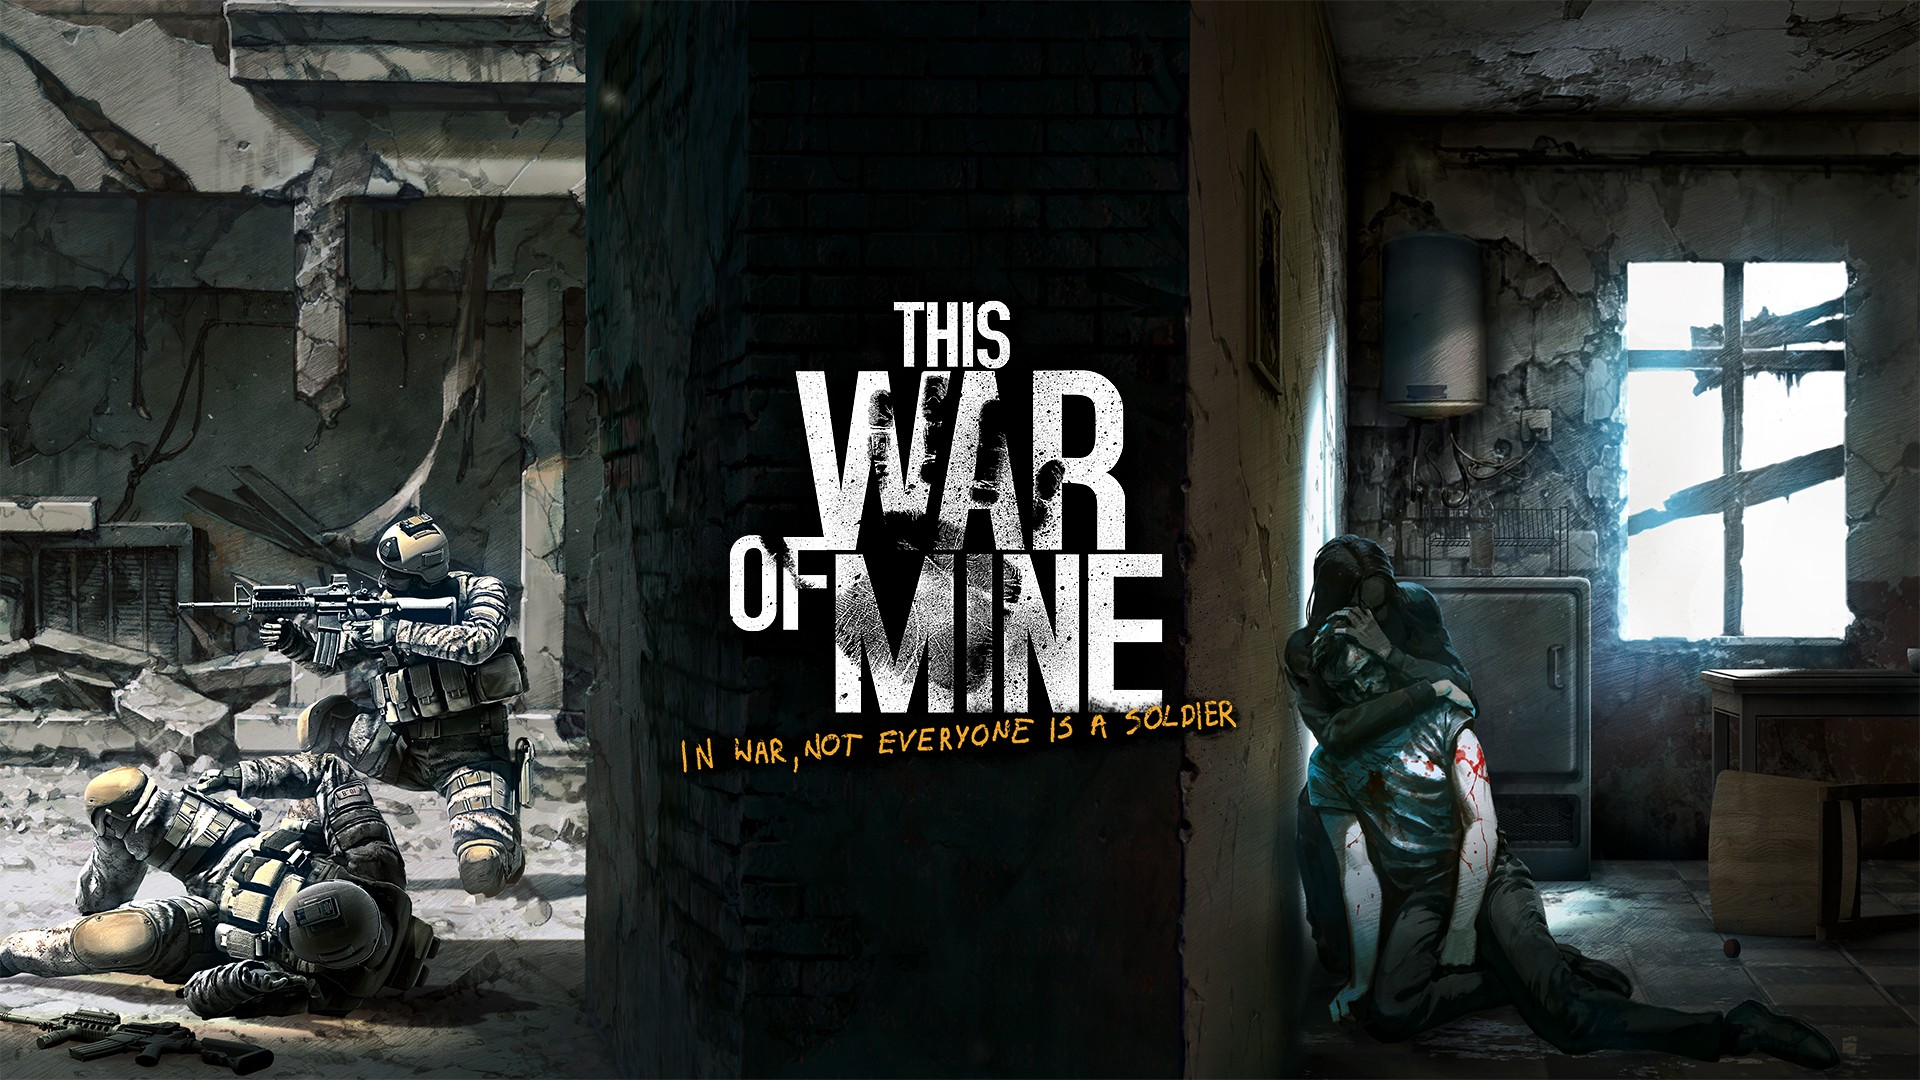 "On the left are two soldiers who have weapons and are actively shooting. On the right are two civilians who are injured in a laundry room. In the center is the logo for This War of Mine, with the subtitle ""In War, not everyone is a Soldier."""